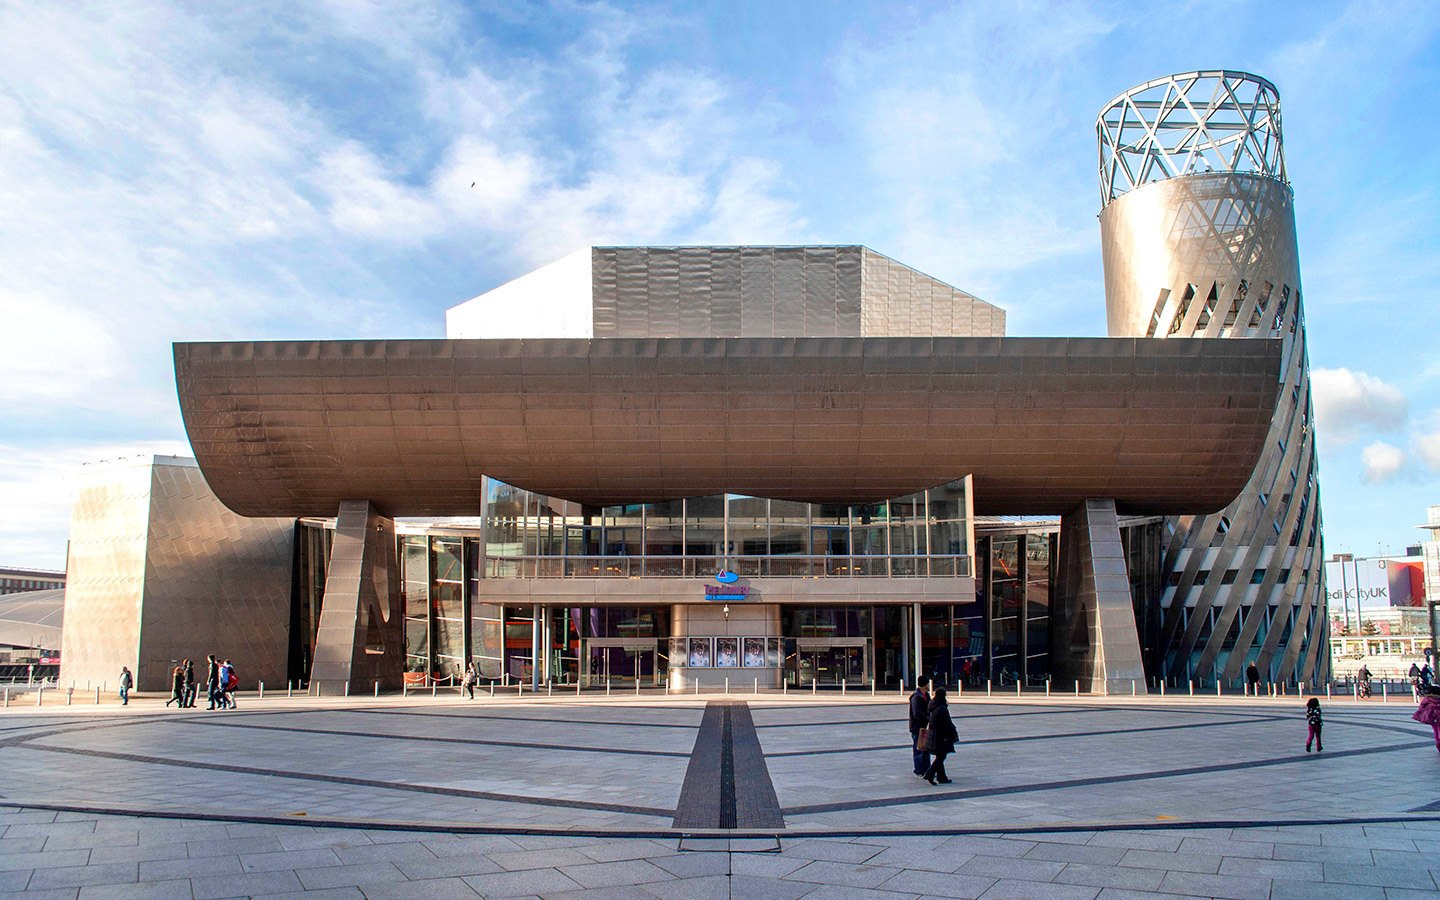 The Lowry Centre in Manchester's Salford Quays